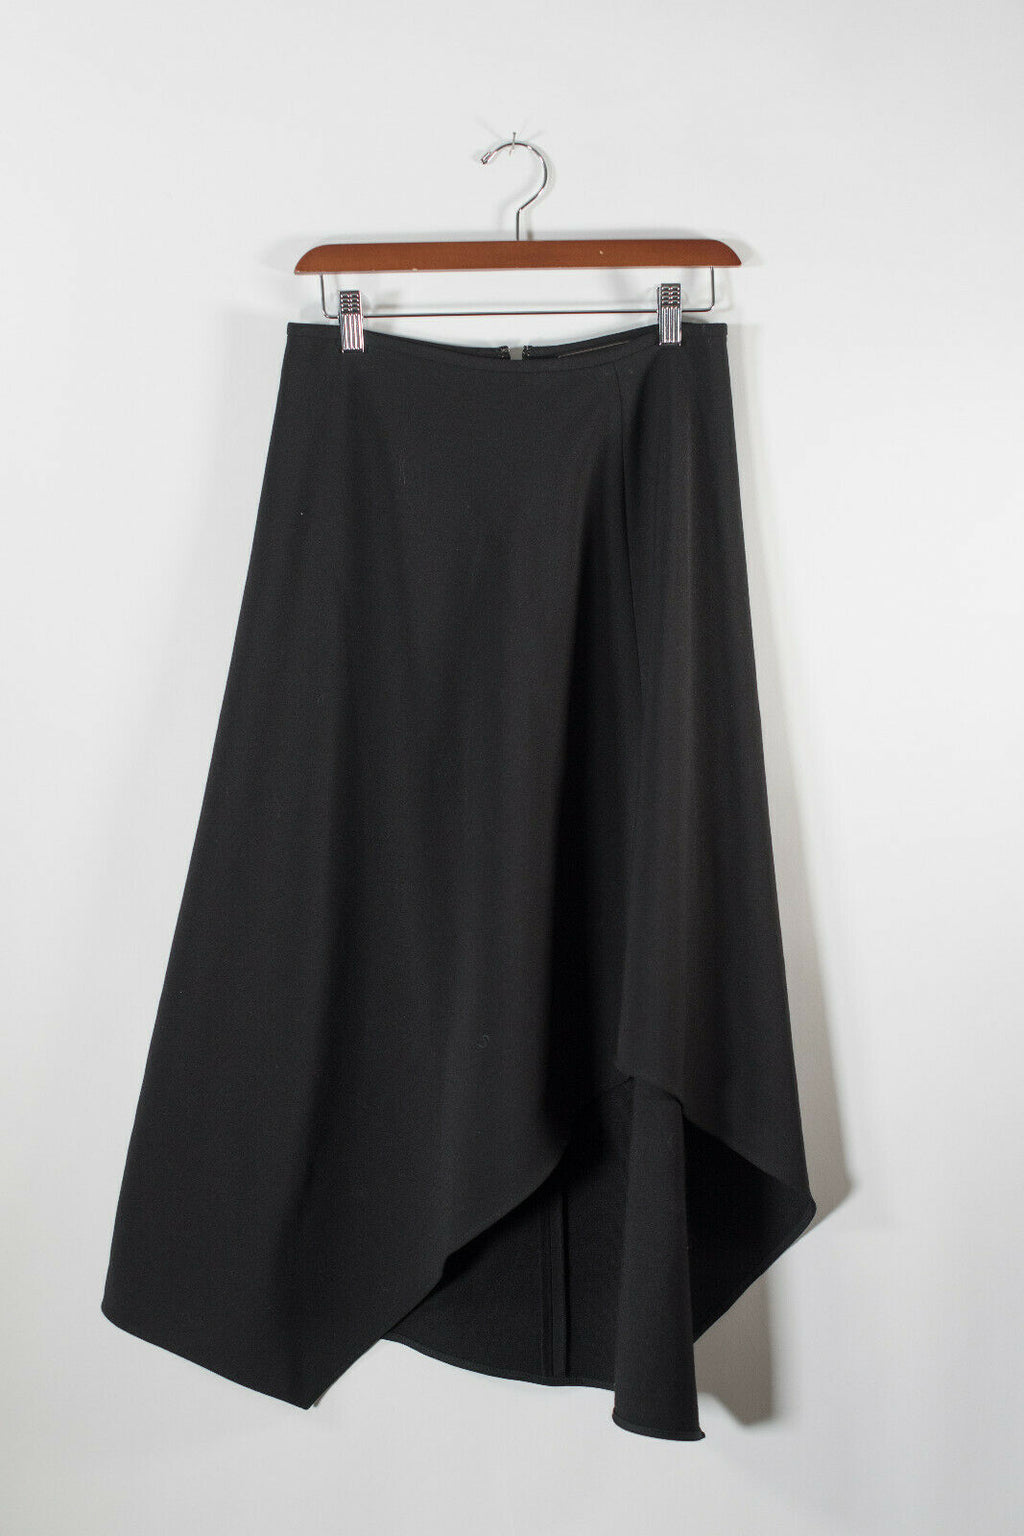 BCBG Max Azria Womens Size 2 XS Black Skirt Asymmetrical Midi Long Maxi Back Zip